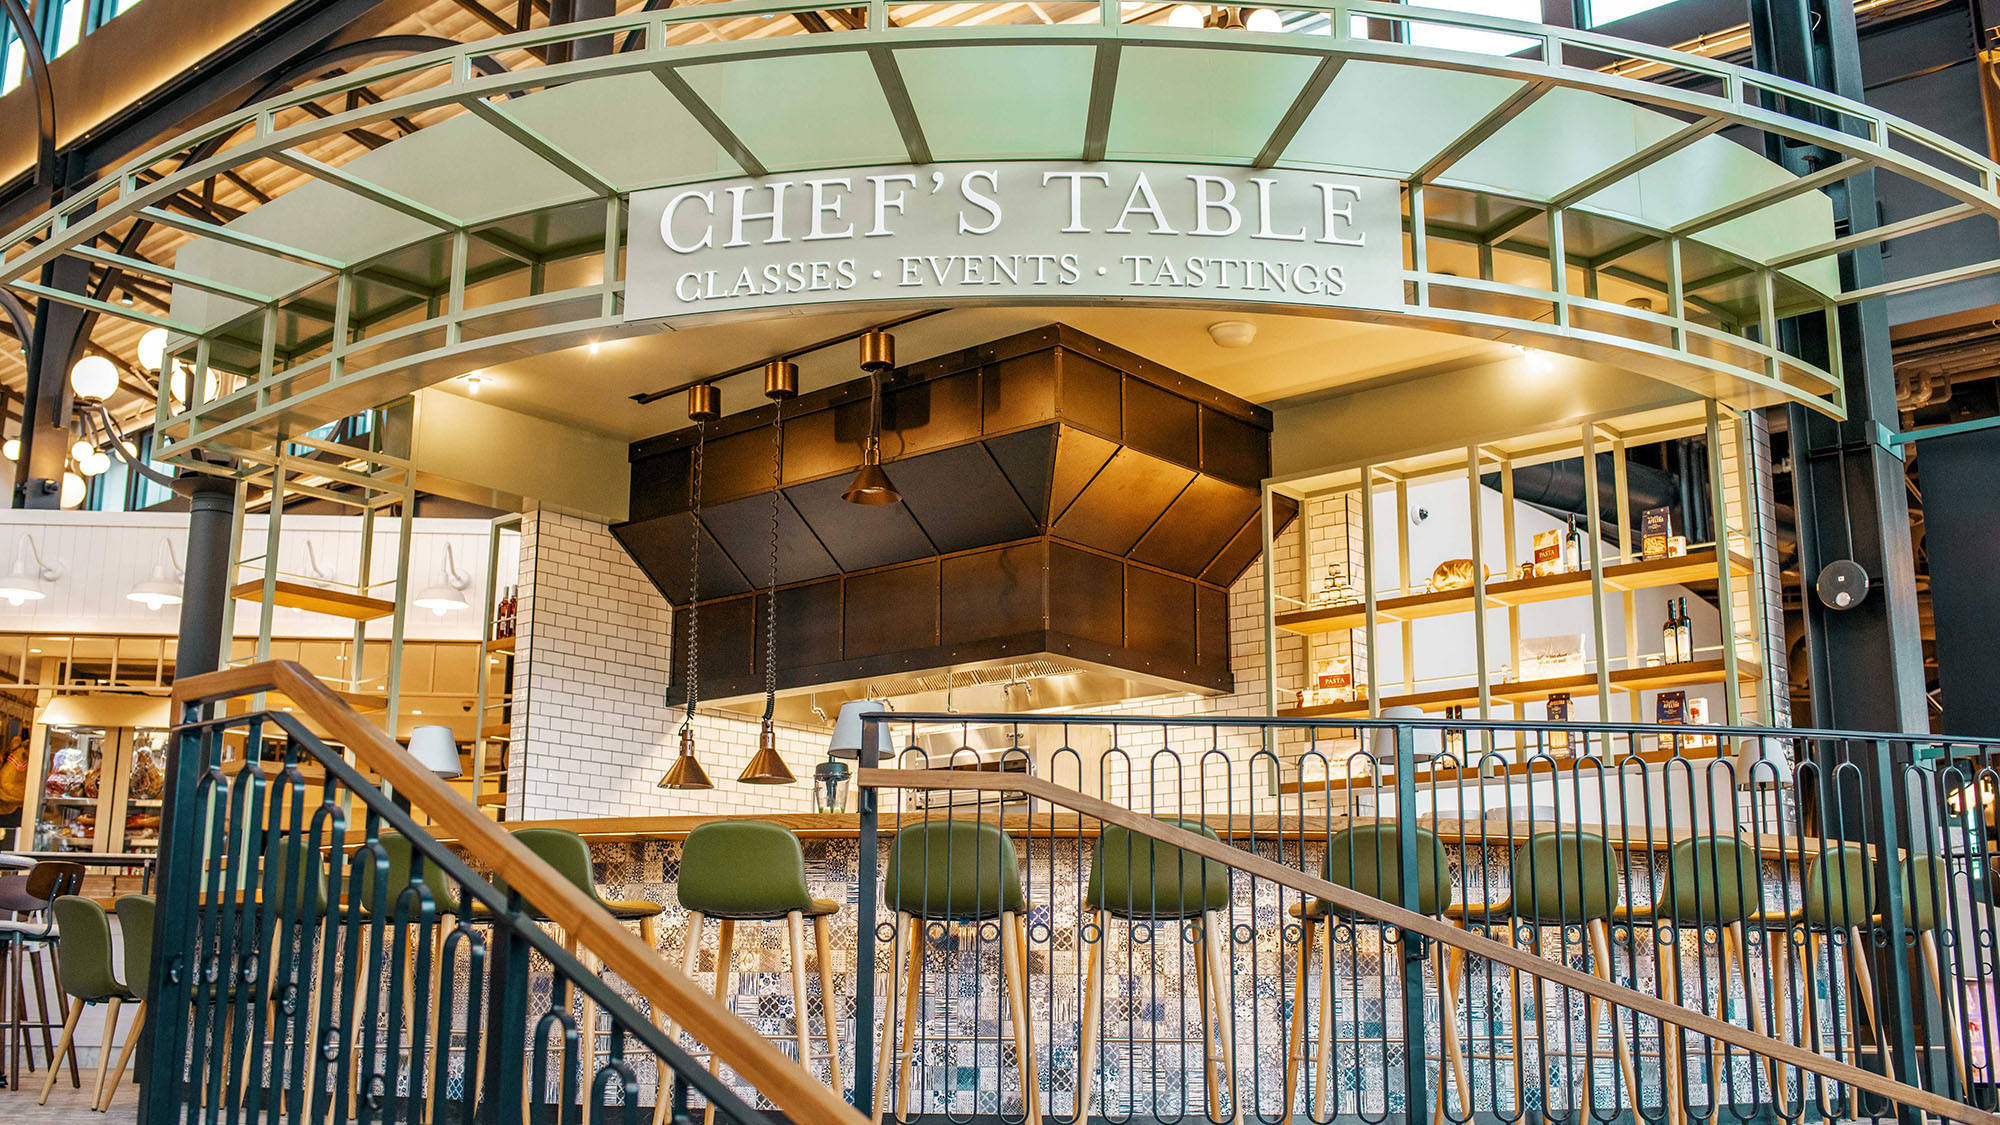 Cucina Las Vegas Eataly Brings A New Bag Of Tricks To The Las Vegas Strip Travel